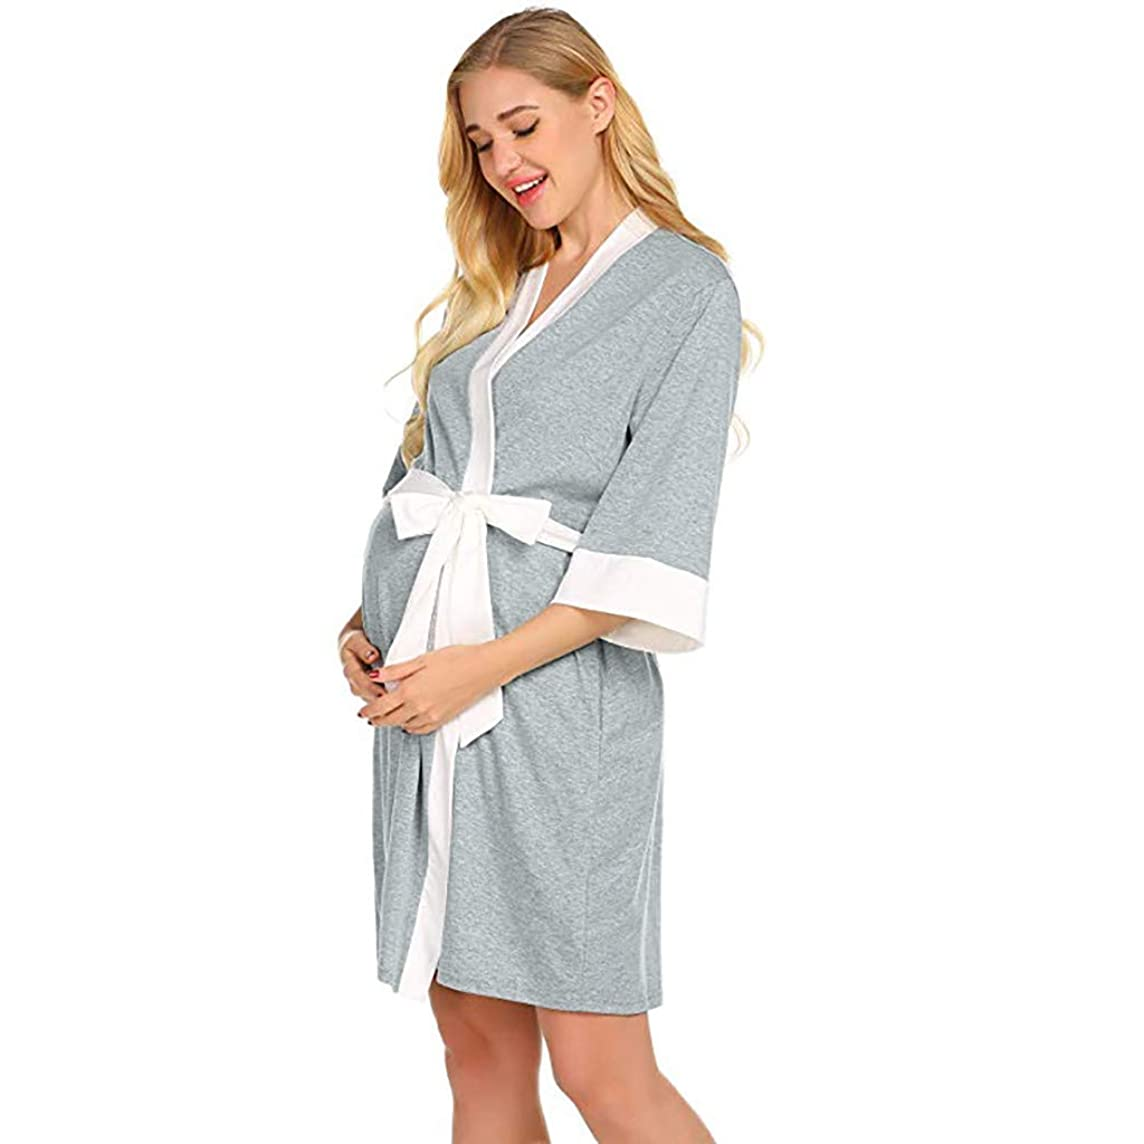 Maternity Robe,Women Nursing Delivery Nightgowns Hospital Breastfeeding Gown Dress